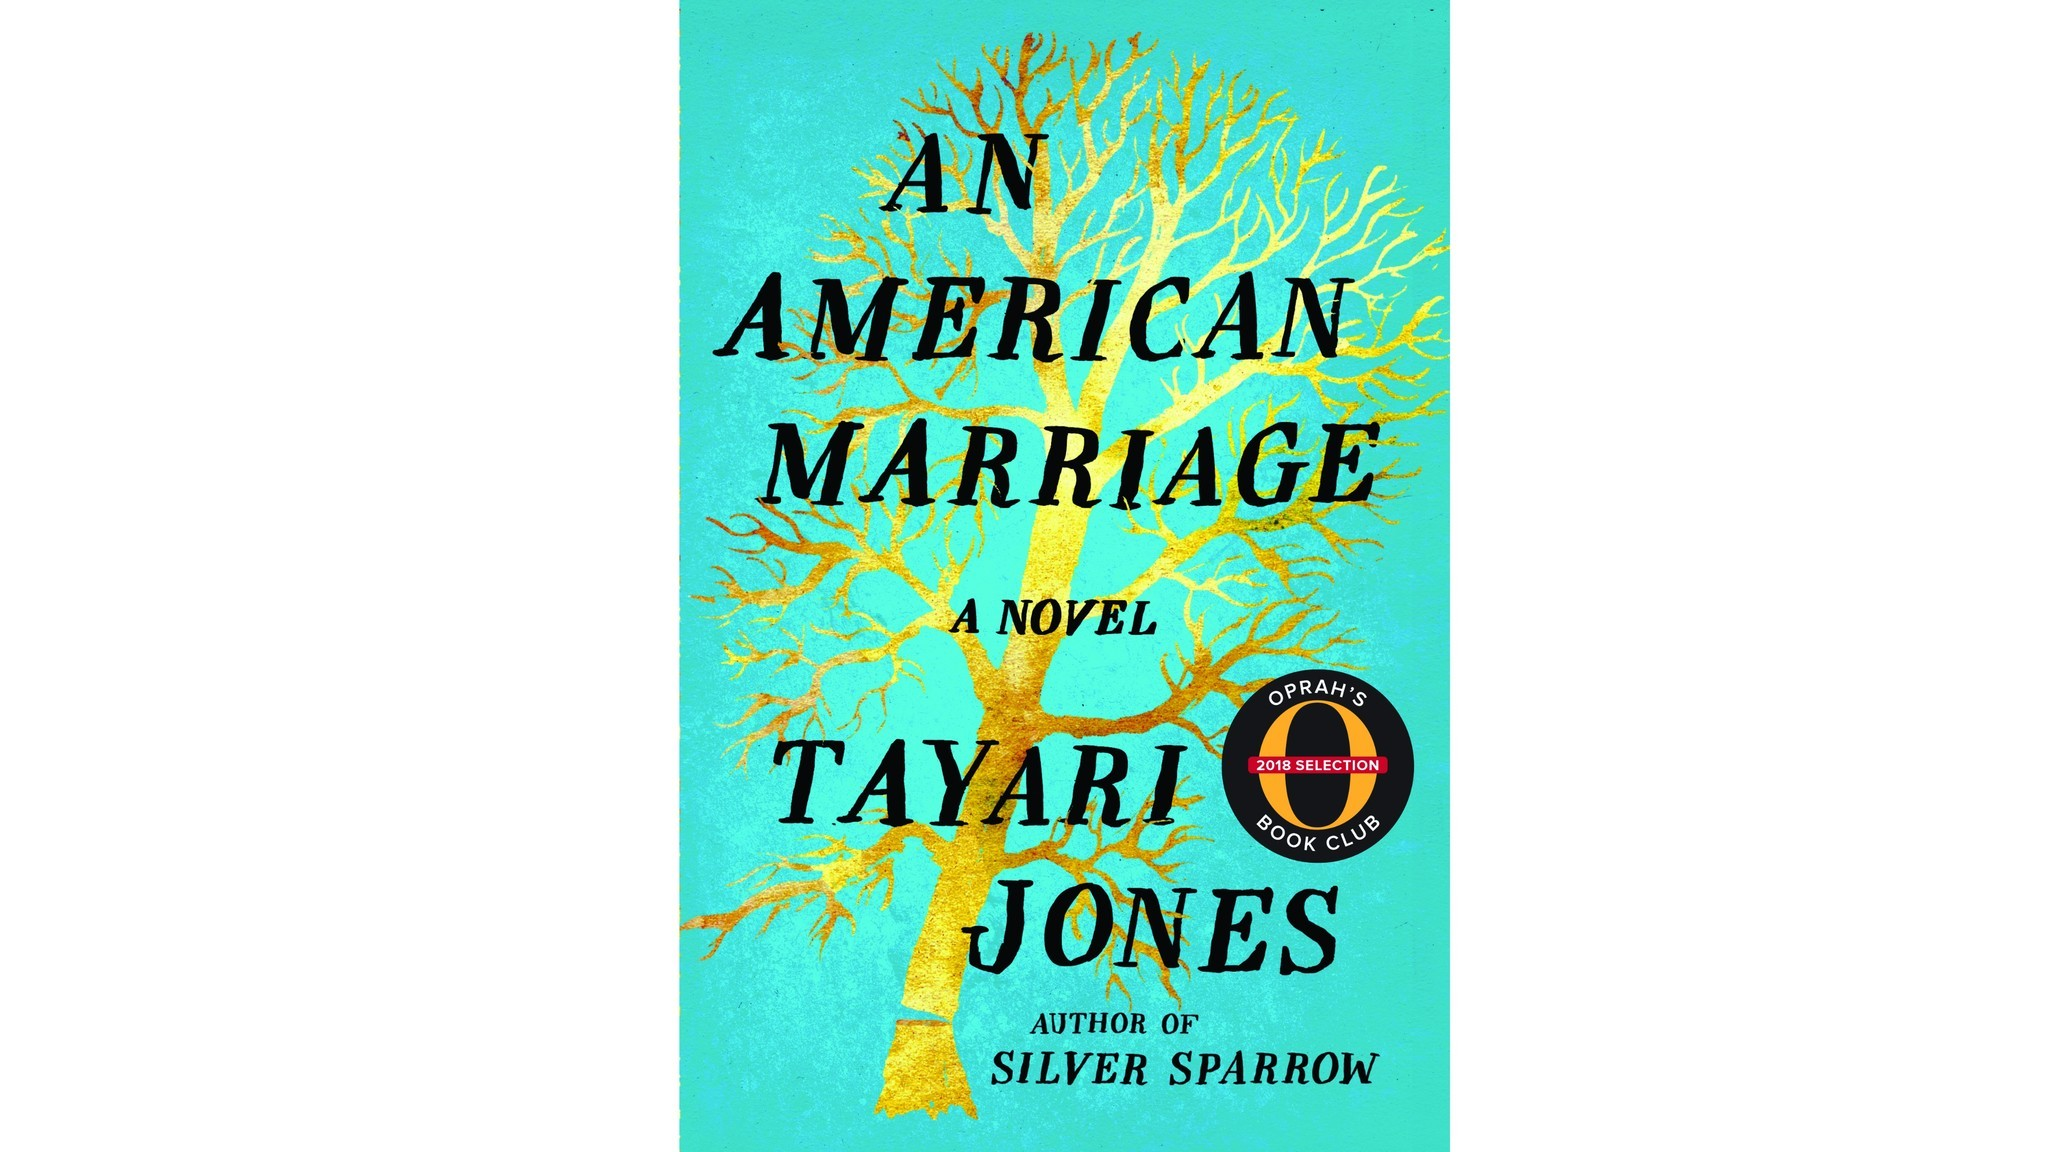 Tayari Jones' 'An American Marriage'.